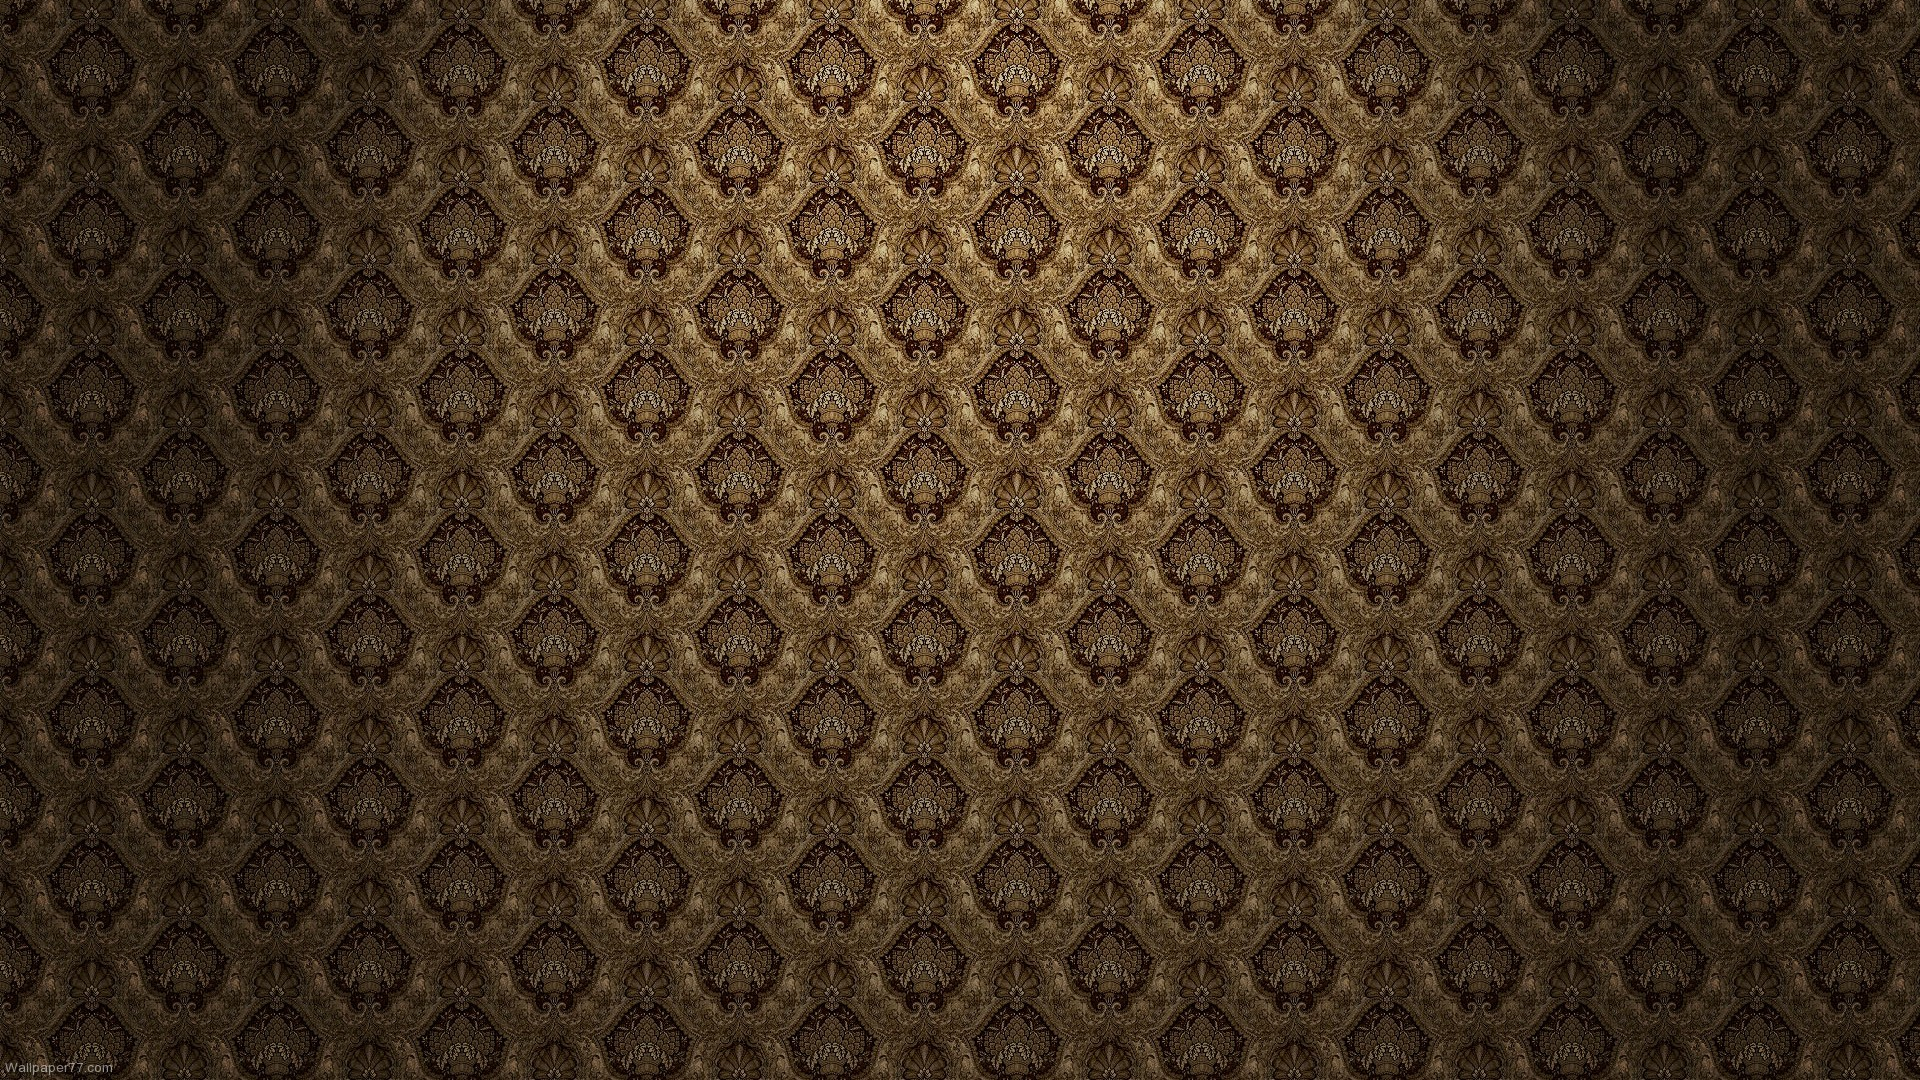 Pattern Wallpaper by Wonkajh background patterns pattern wallpapers 1920x1080